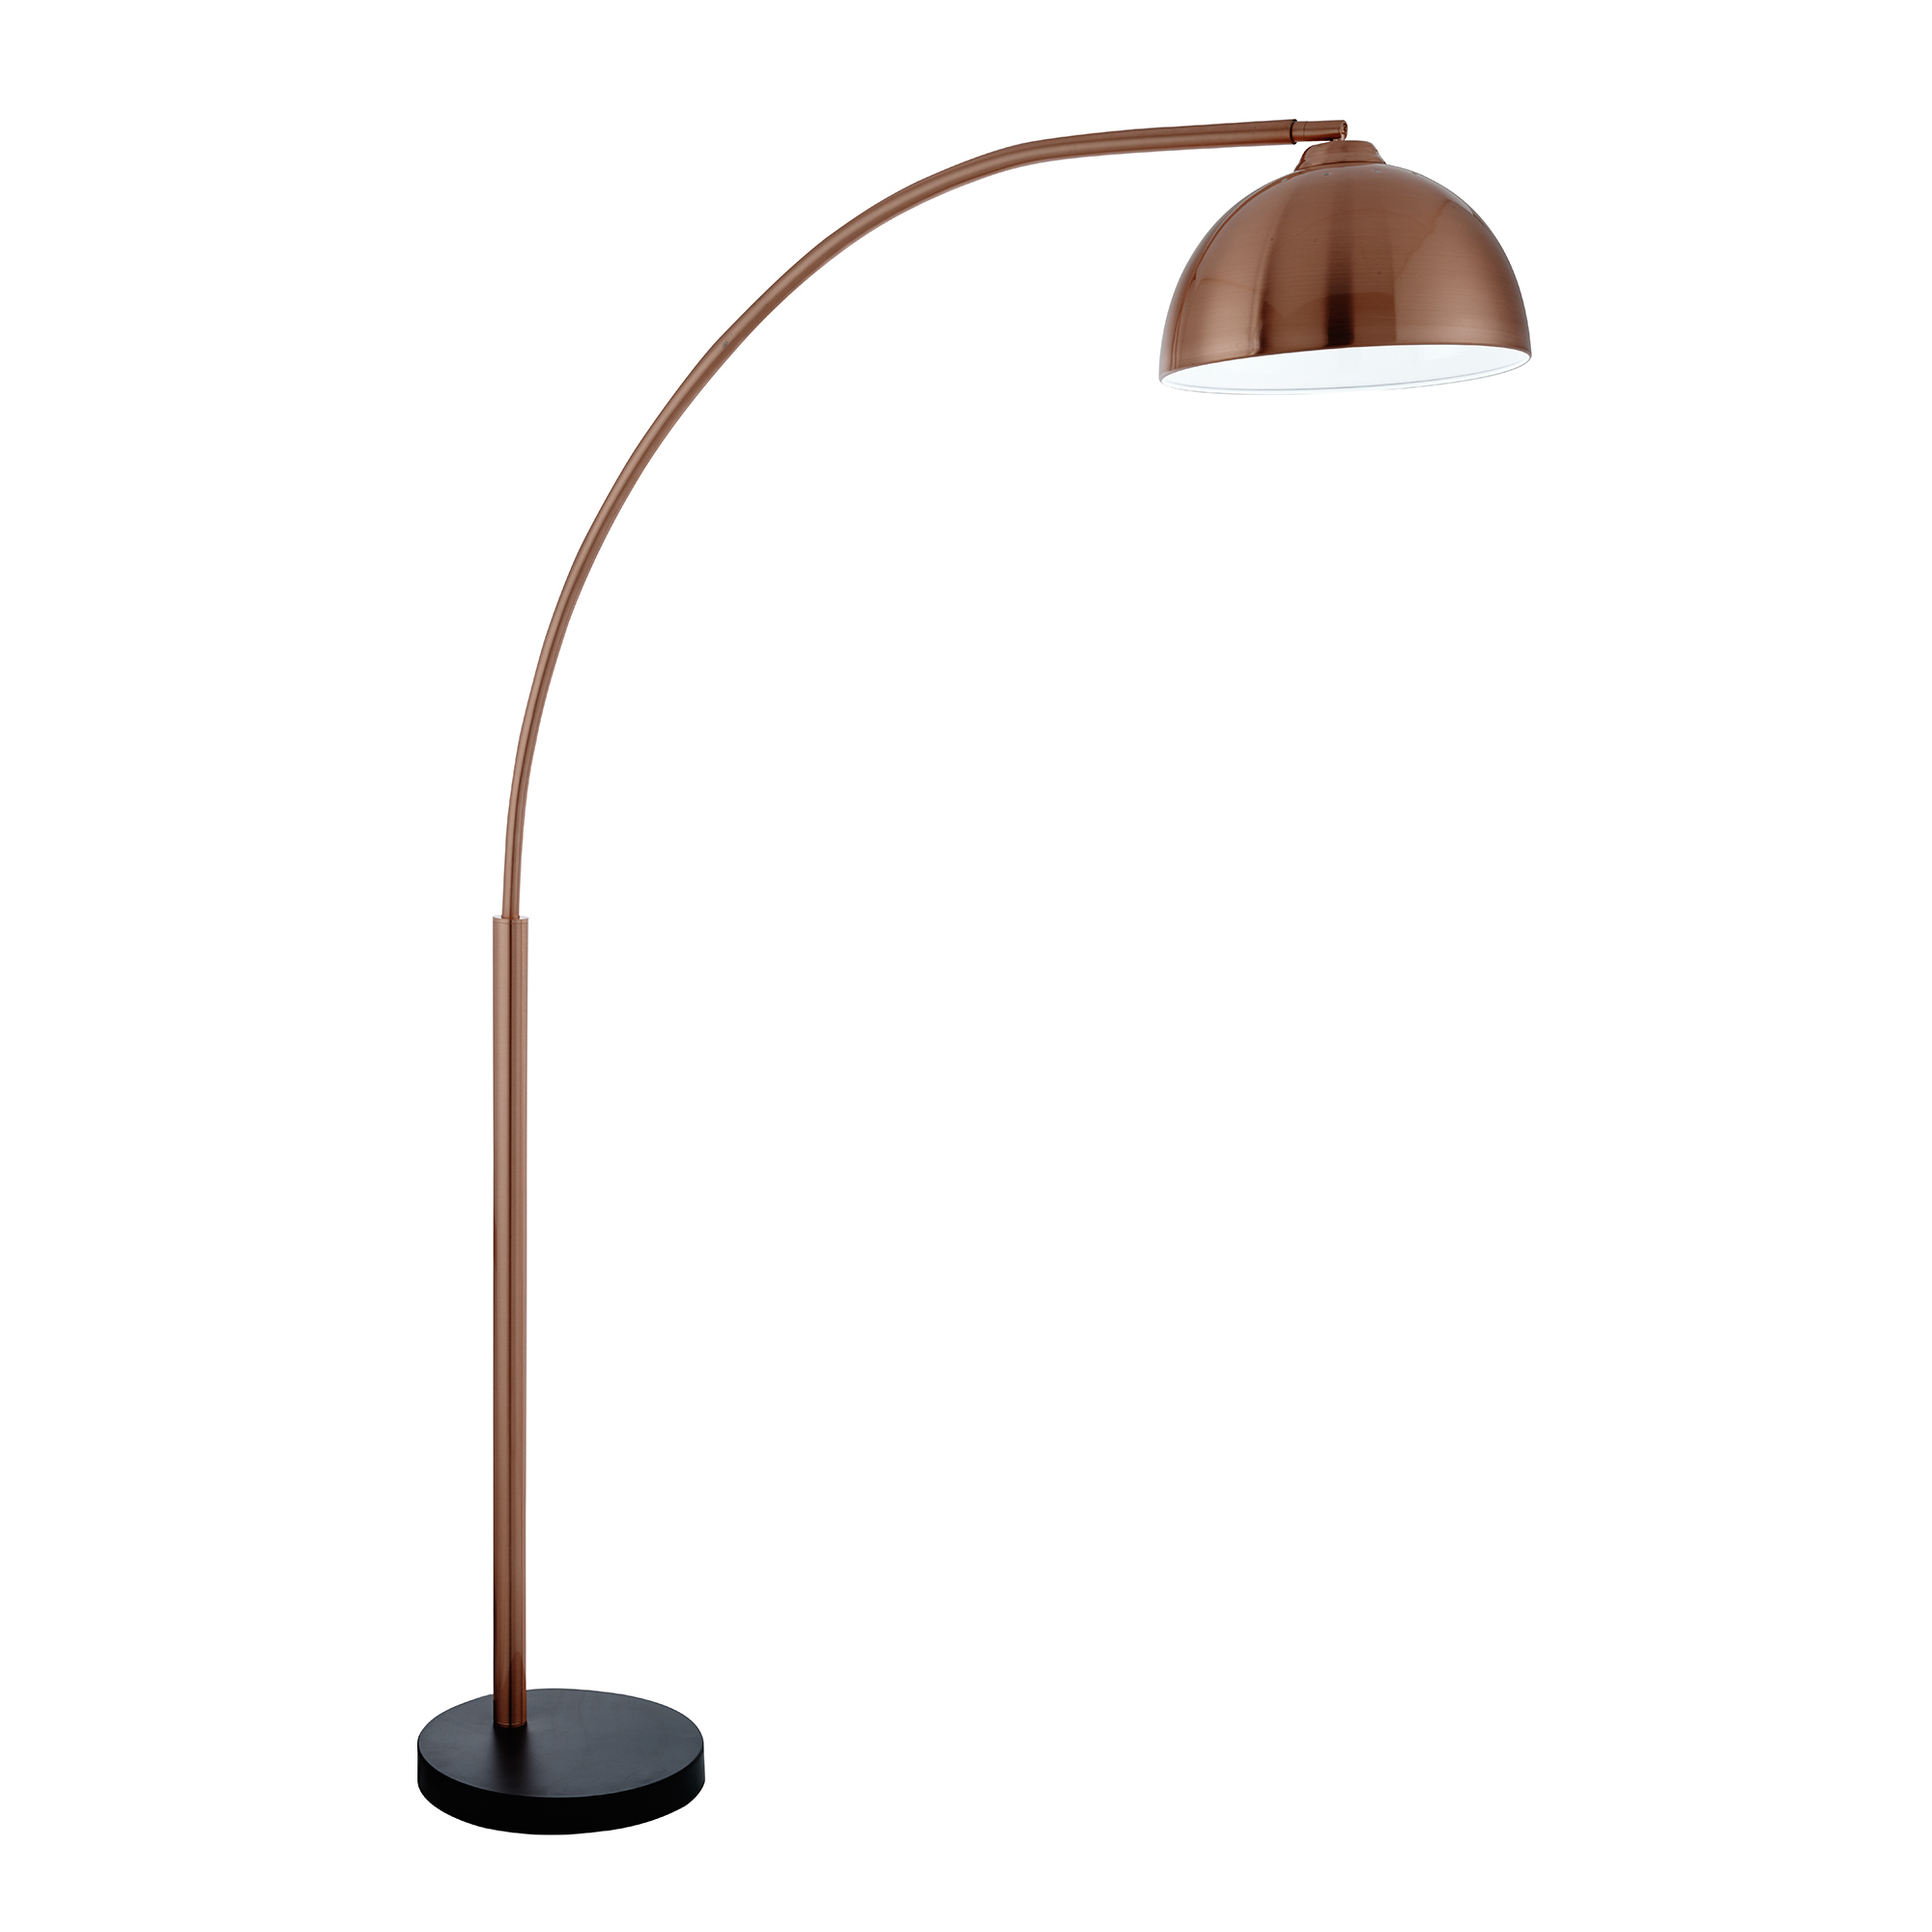 COPPER FLOOR LAMP WITH DOME SHAPED METAL SHADE